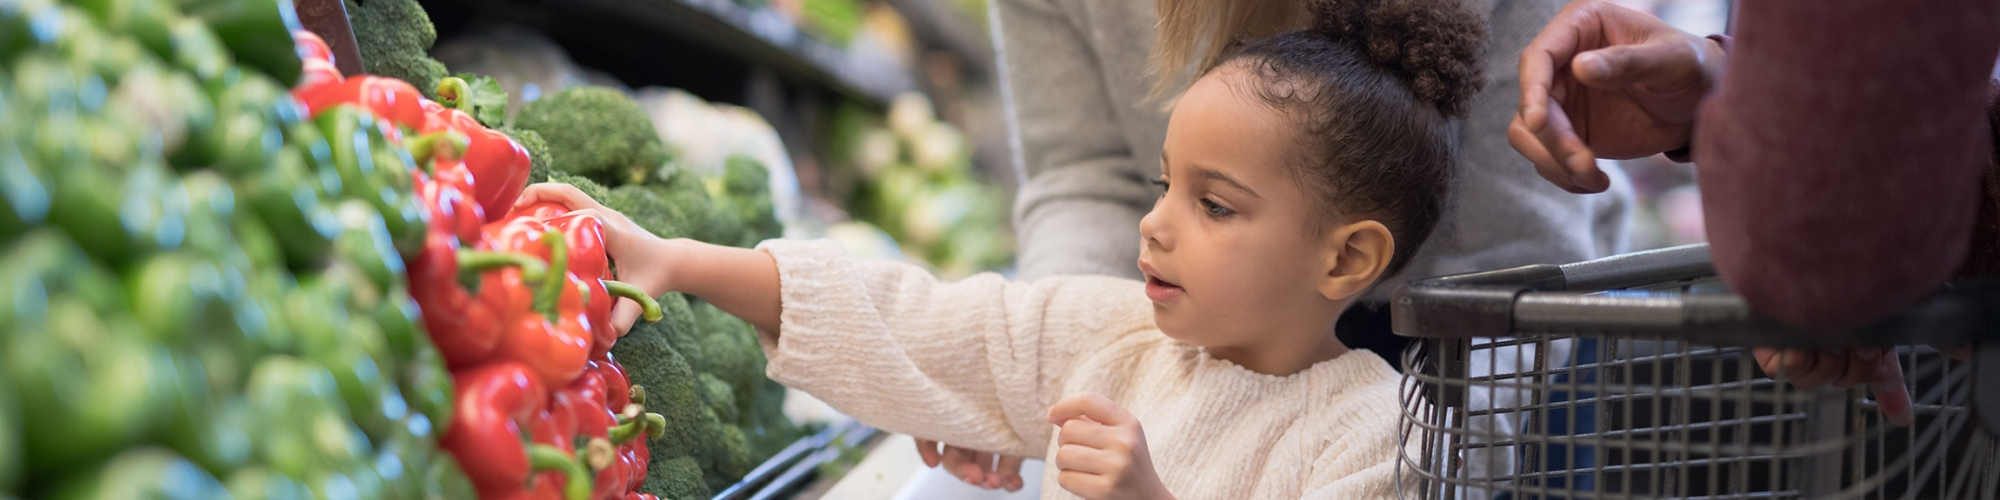 child picking out healthy food